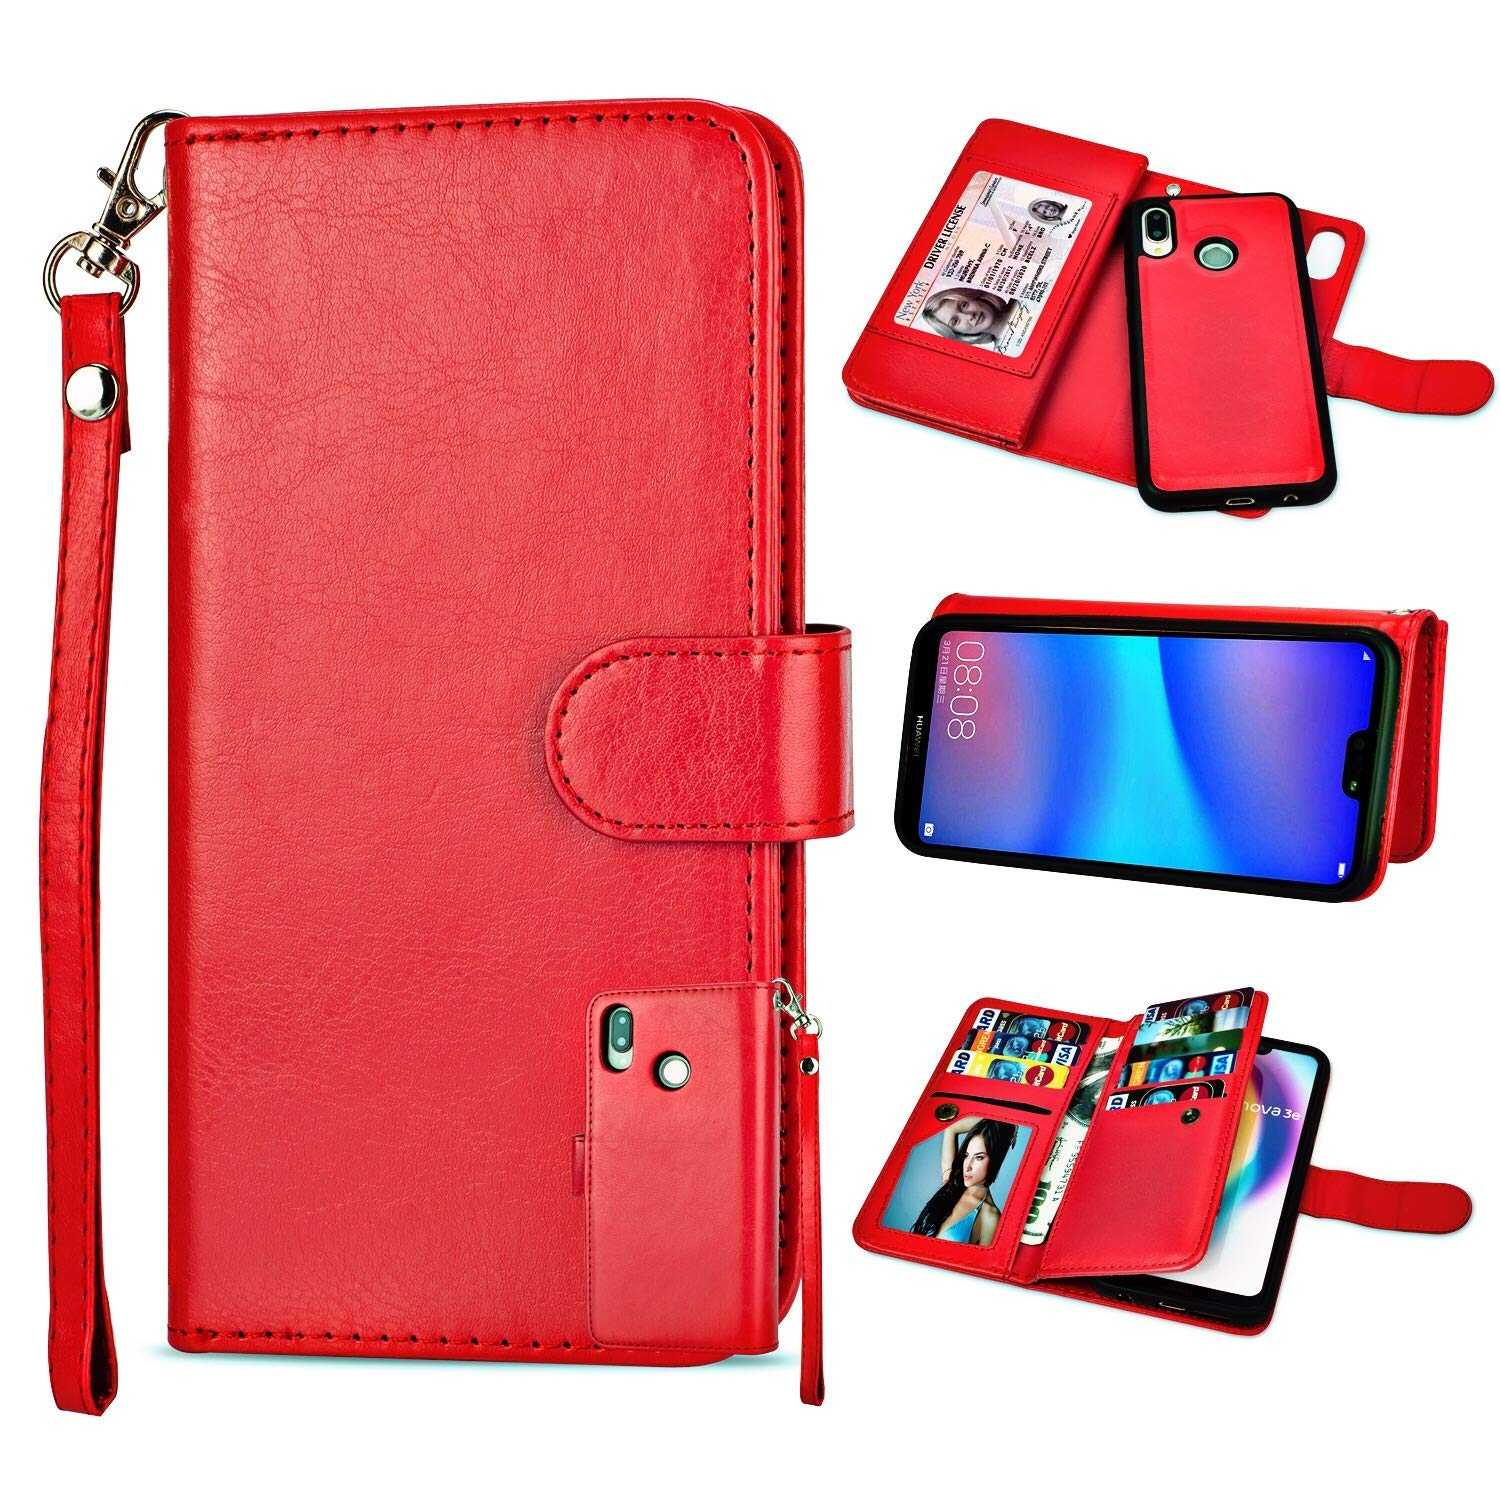 Cyber Deals Monday Deals Sales-Huawei P20 Lite Case, [Wallet Stand] [Slim Fit] Handmade Heavy Duty Protective Flip Cover Wallet Case for Huawei P20 Lite [Kickstand Feature] Leather Wallet Case (Brown) easygogo